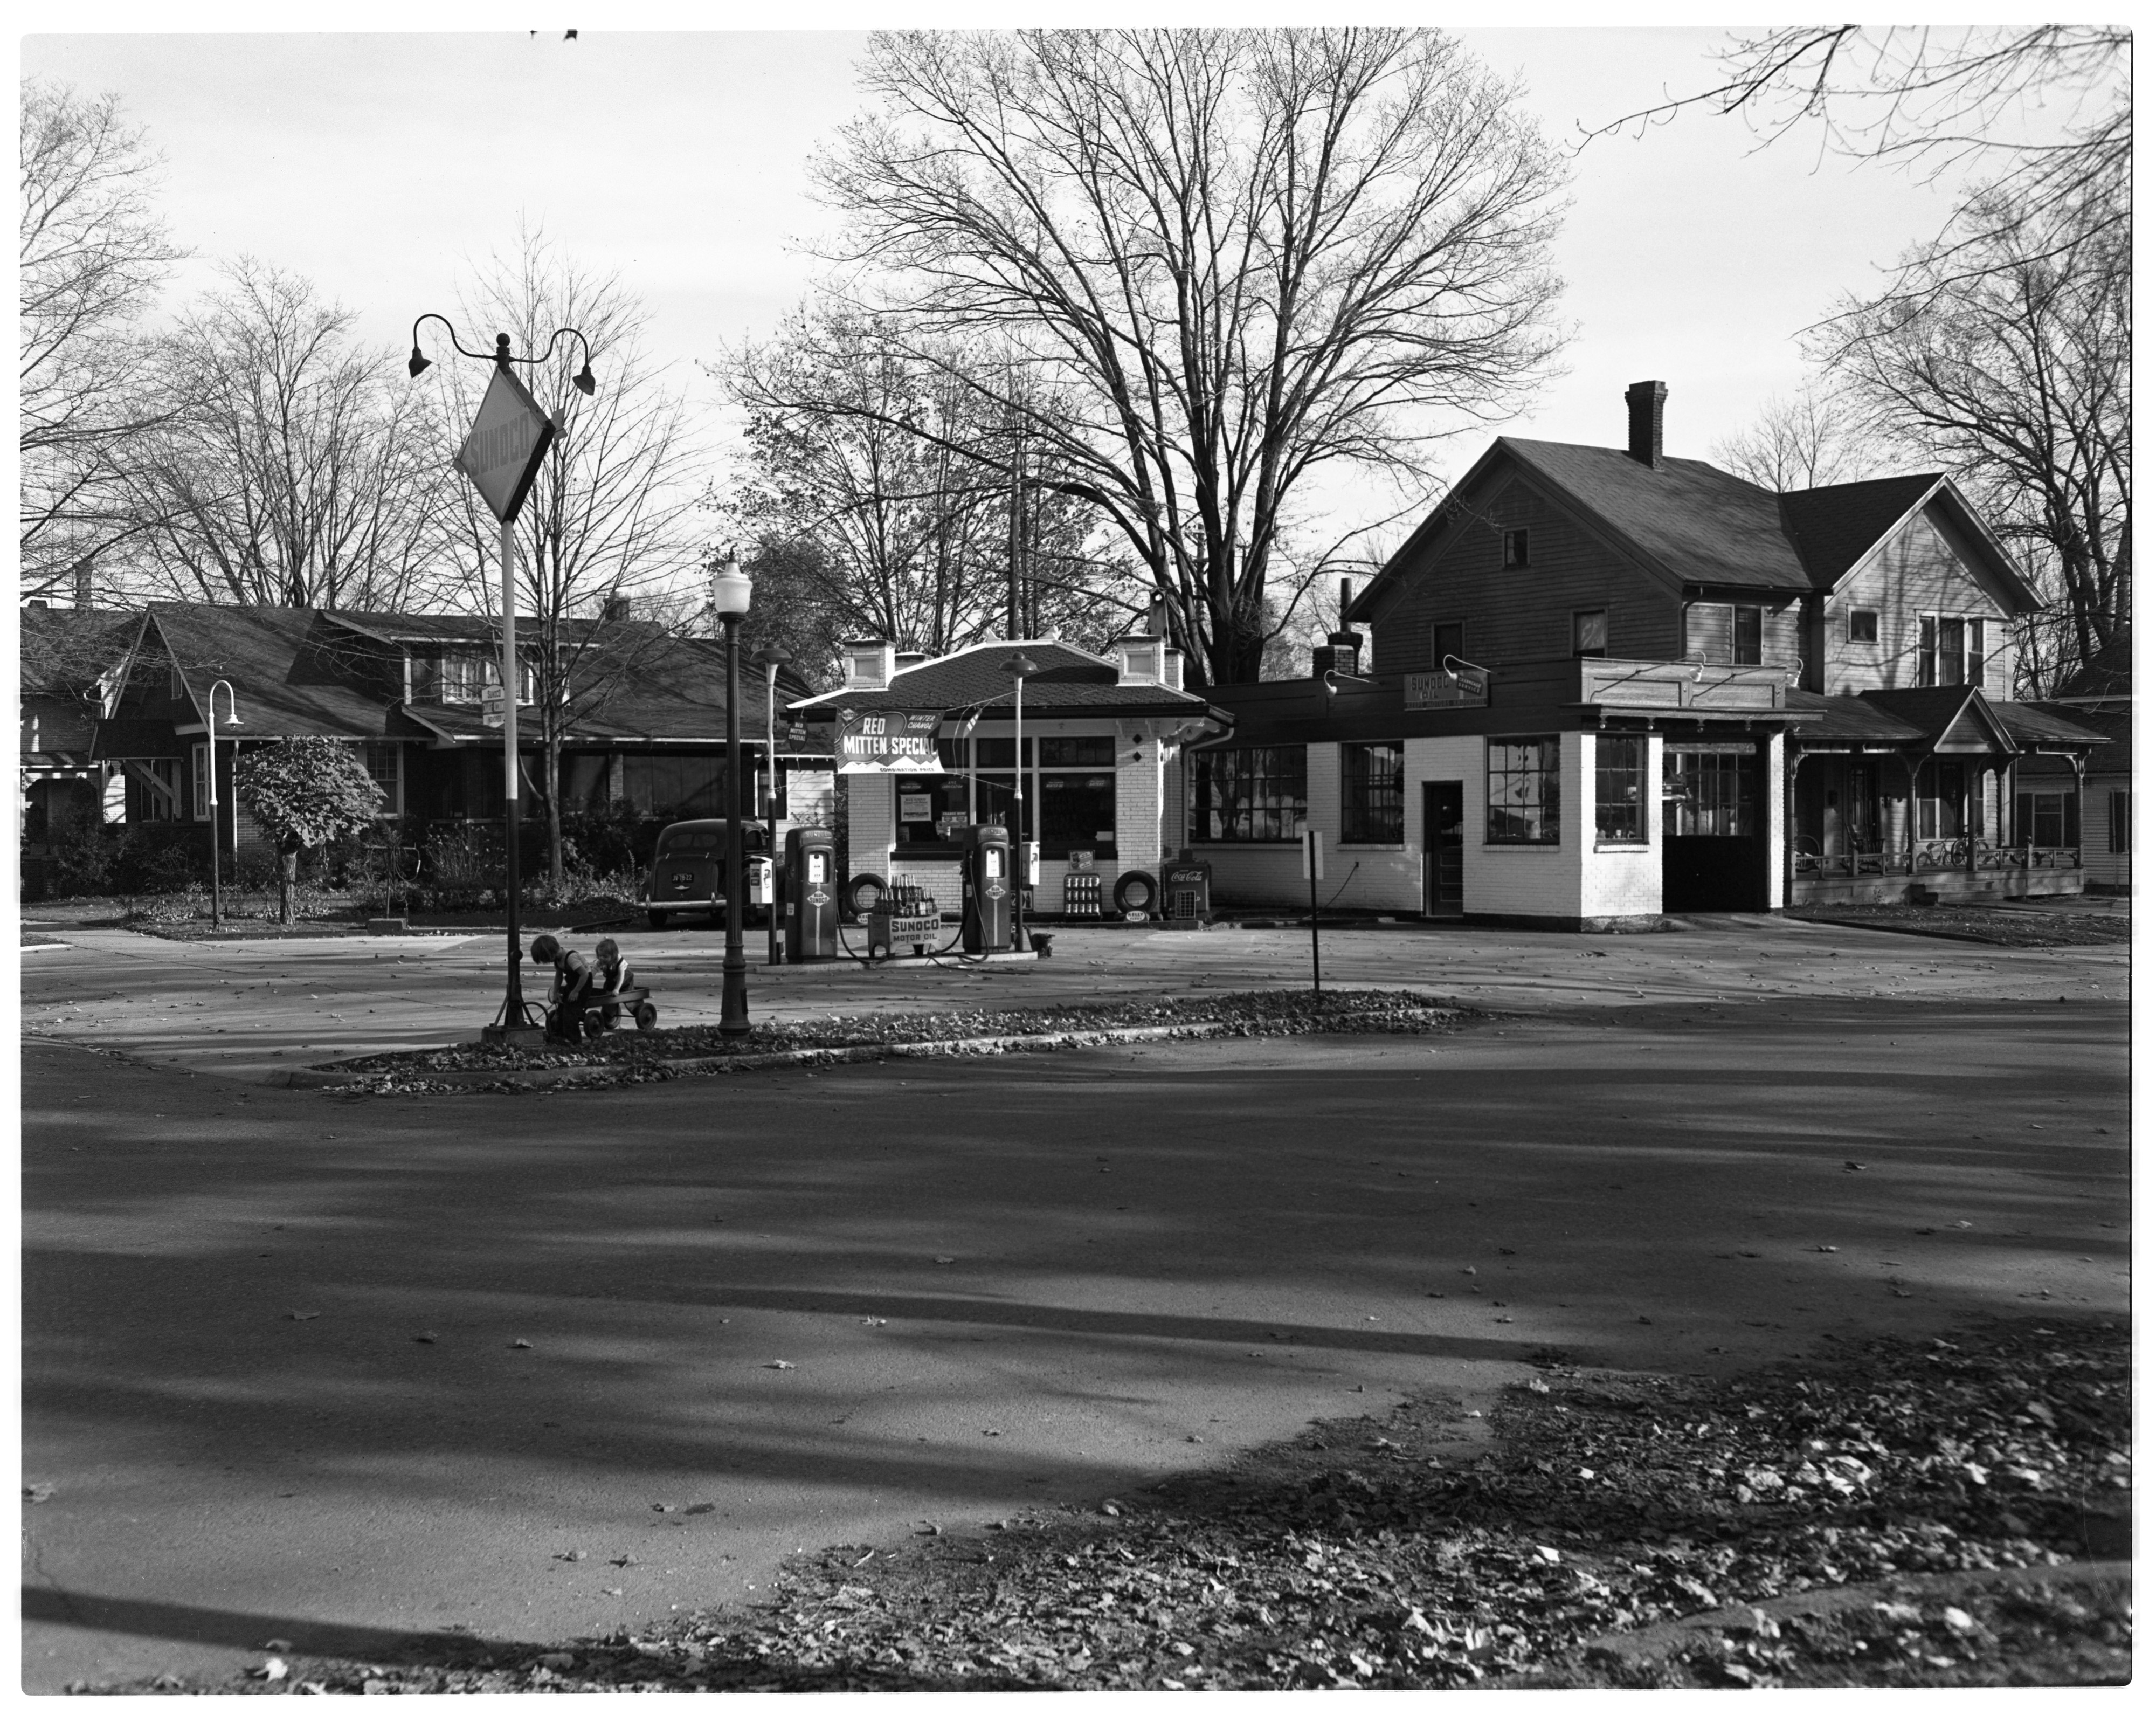 Gas station, November 1951 image